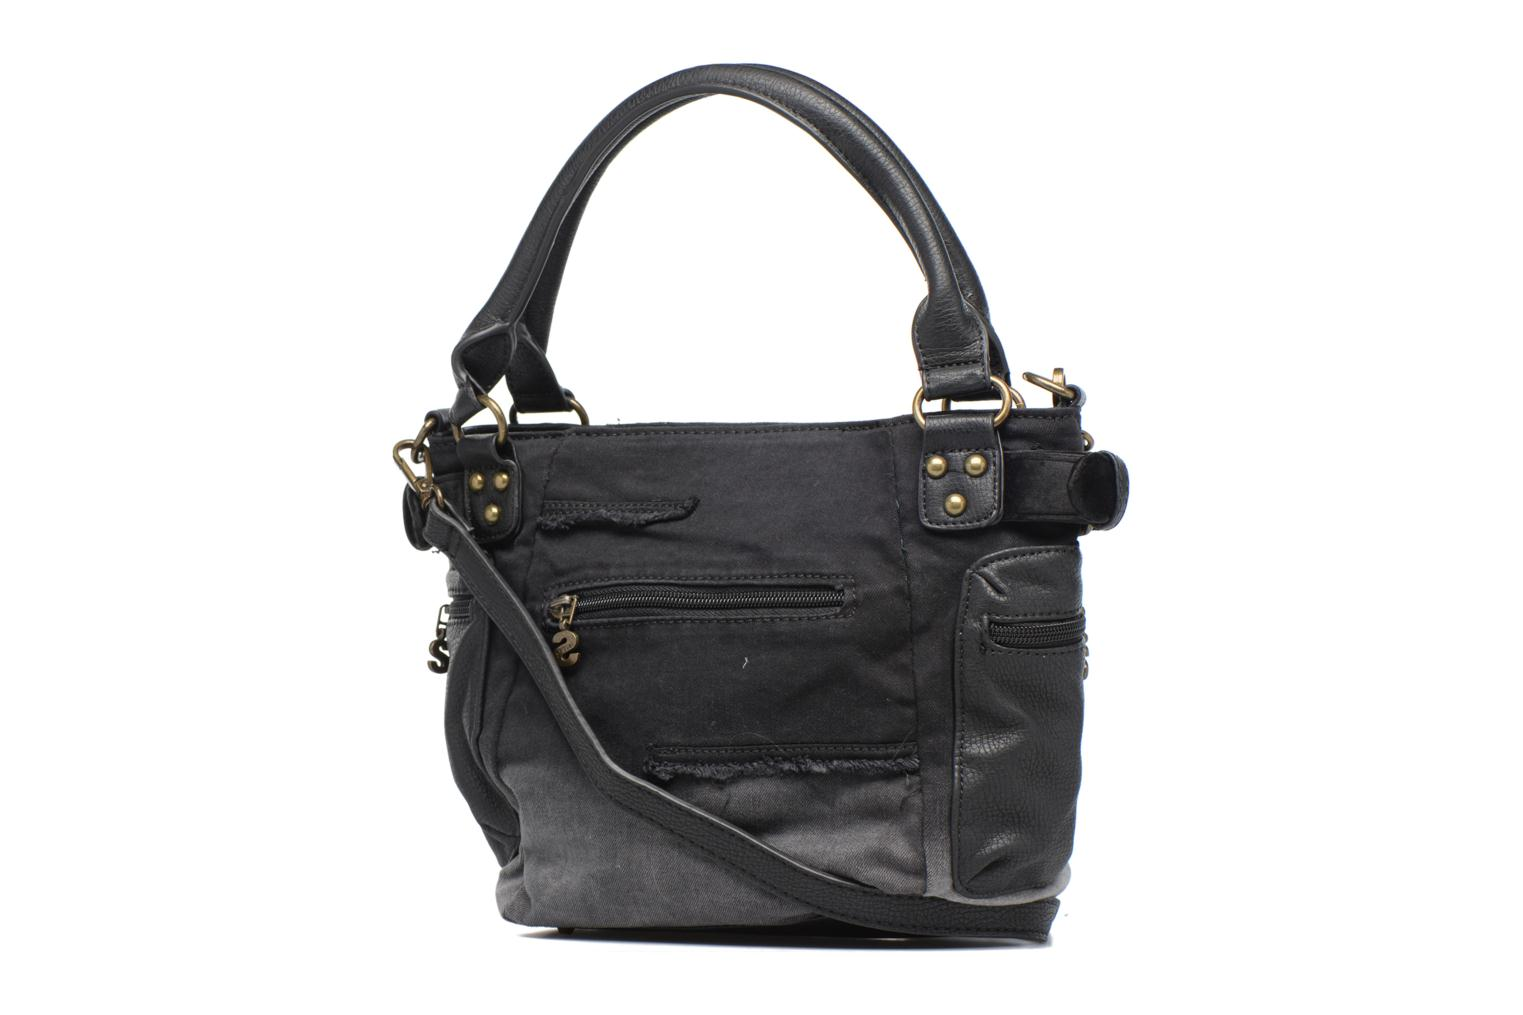 Mcbee Mini Blackout Handbag Negro